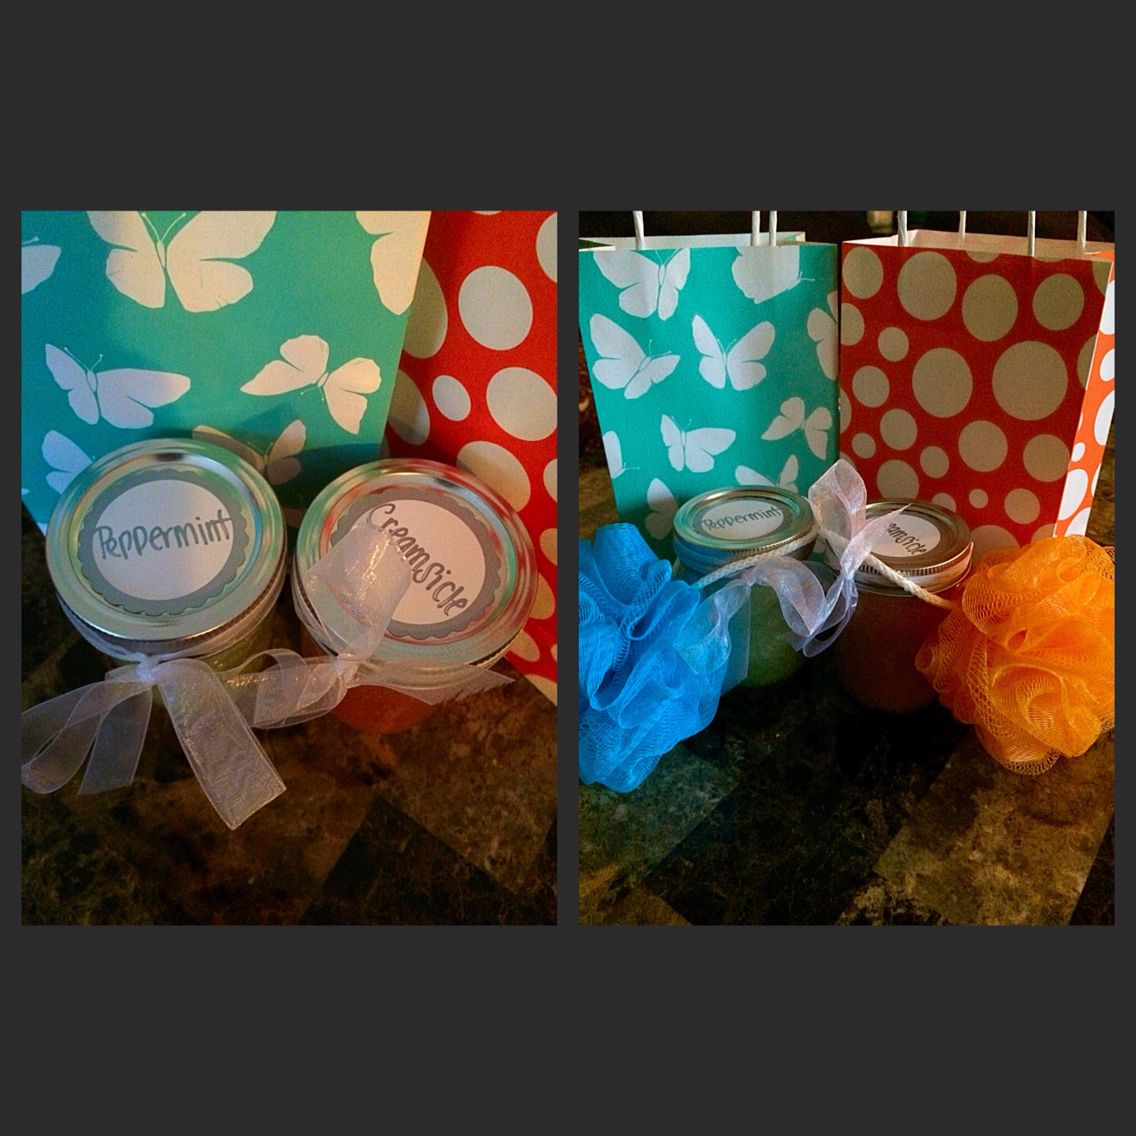 Inspired by Pinterest! Homemade sugar scrubs (peppermint and creamsicle). Paired with a tiny loofa and nail gift certificate!